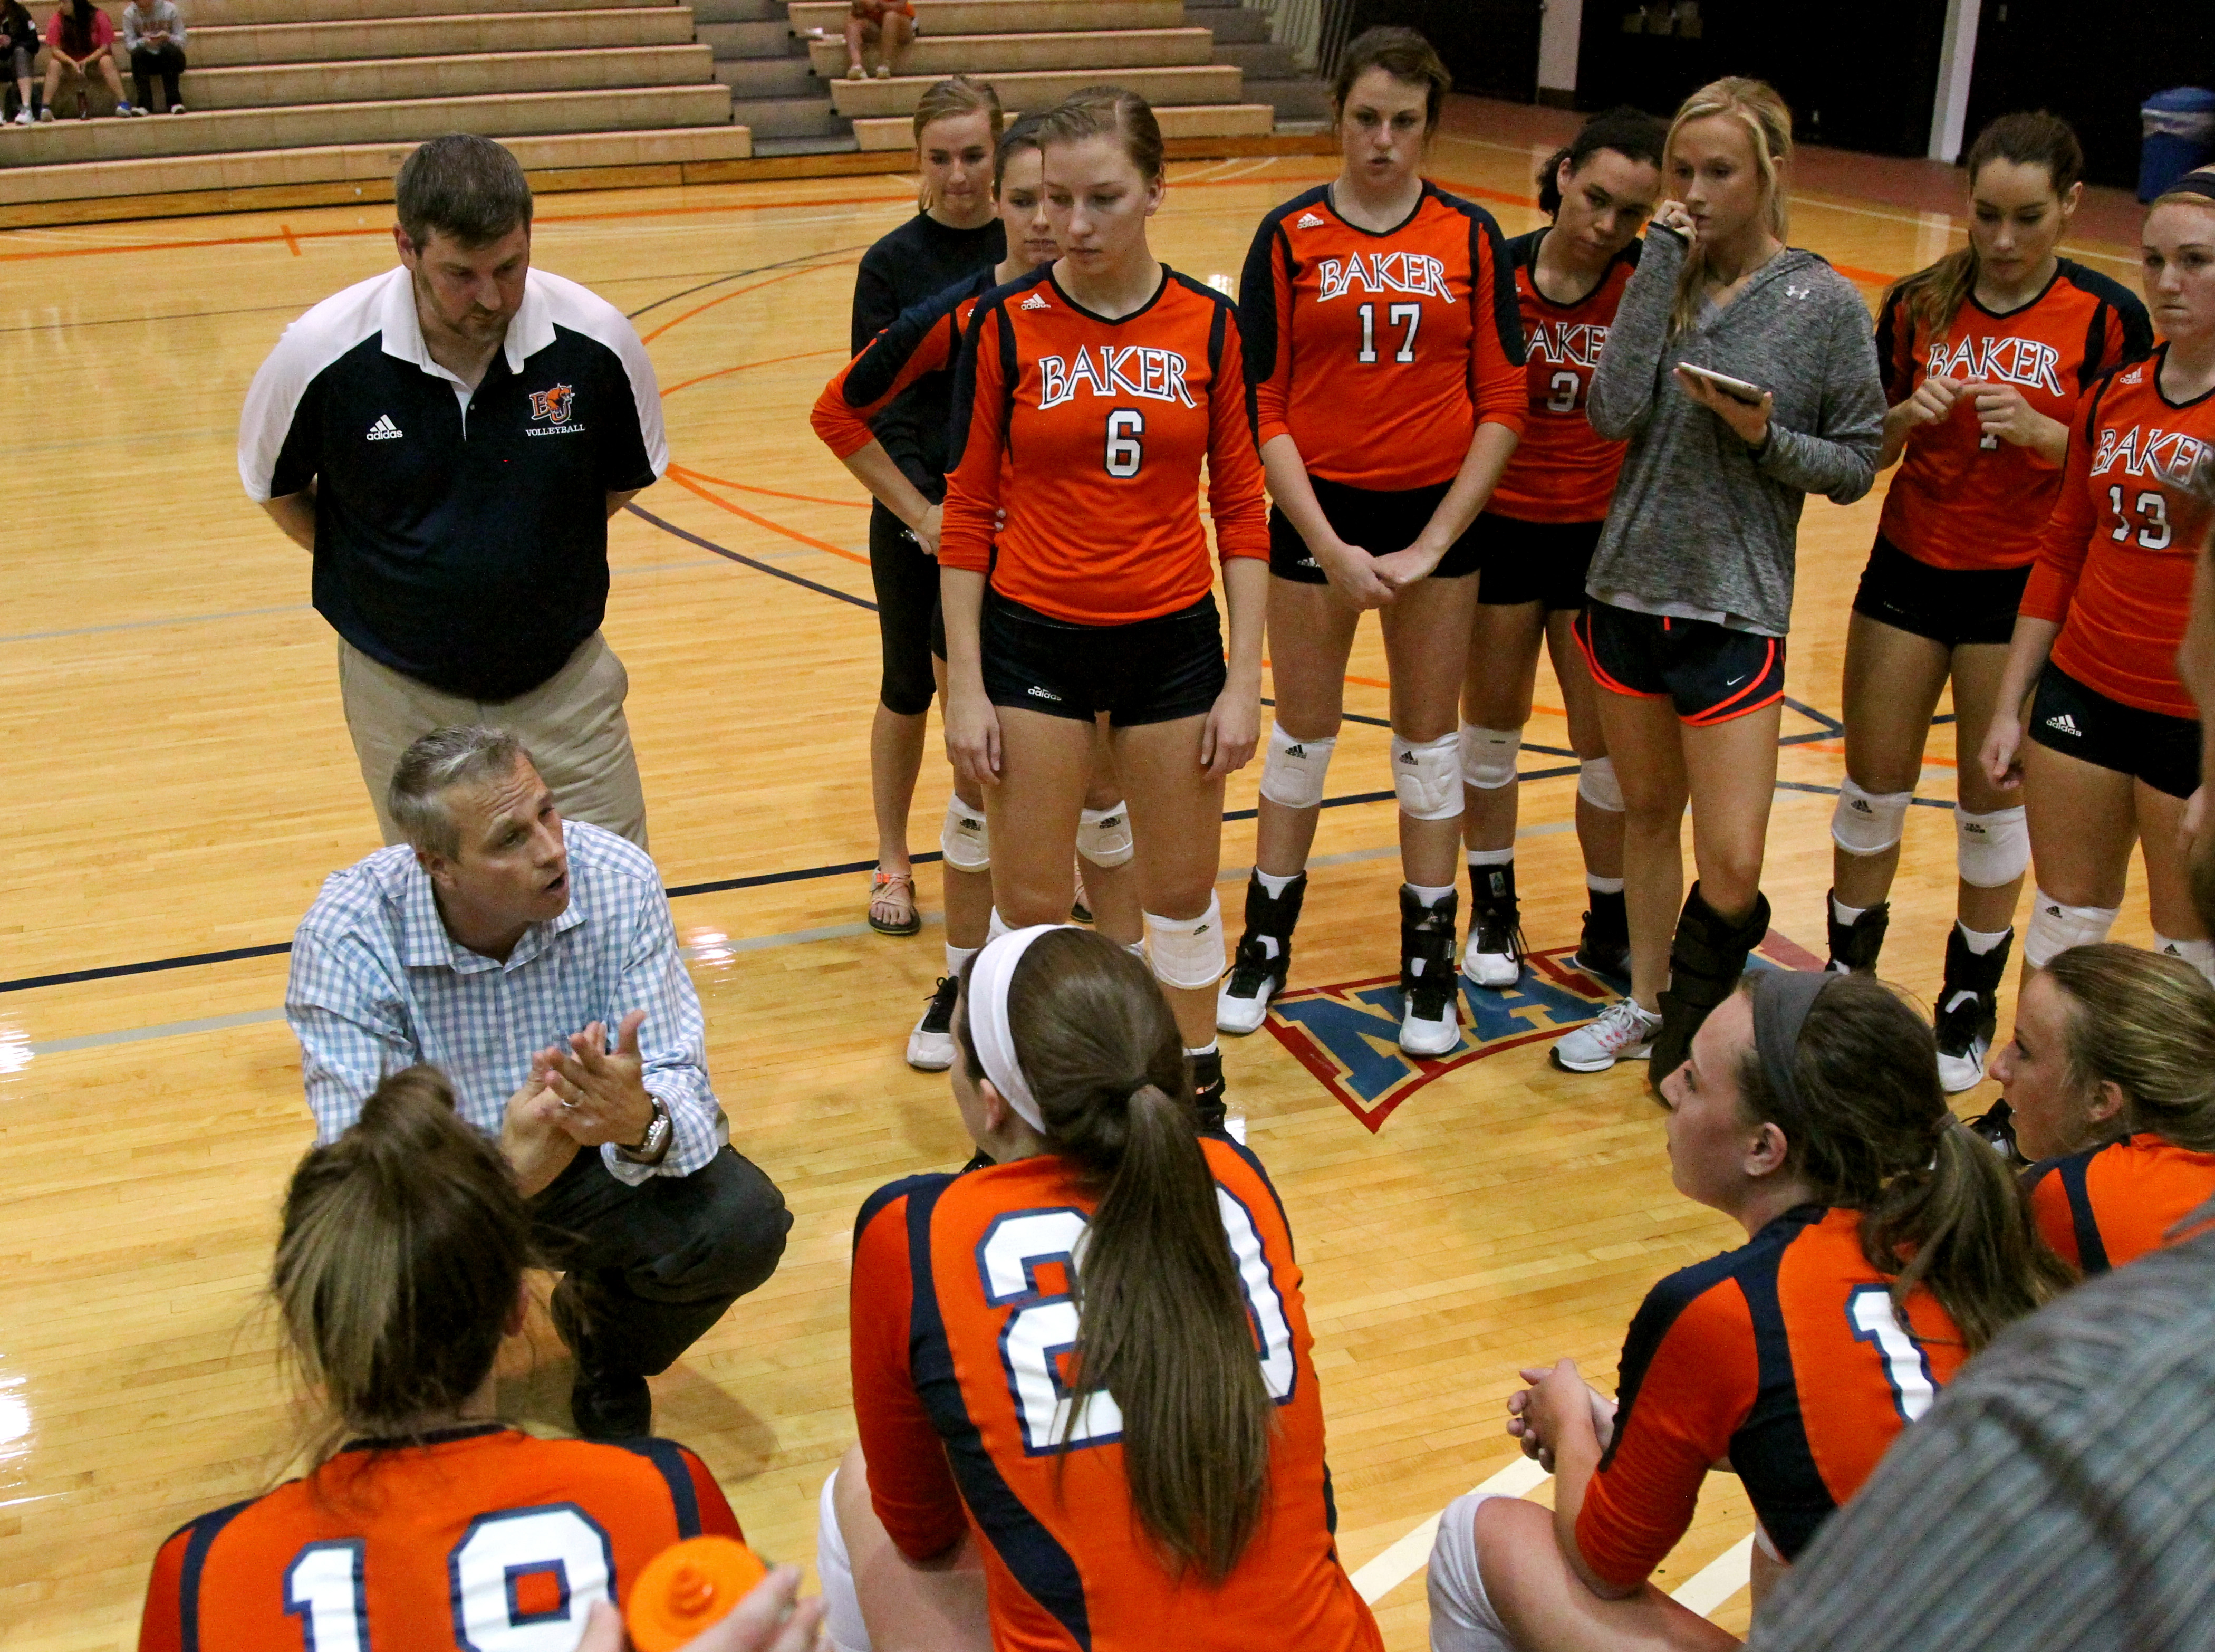 Head coach Matt Windle motivates the team during a timeout in the second set against Peru State on Sept. 13 in the Collins Center.